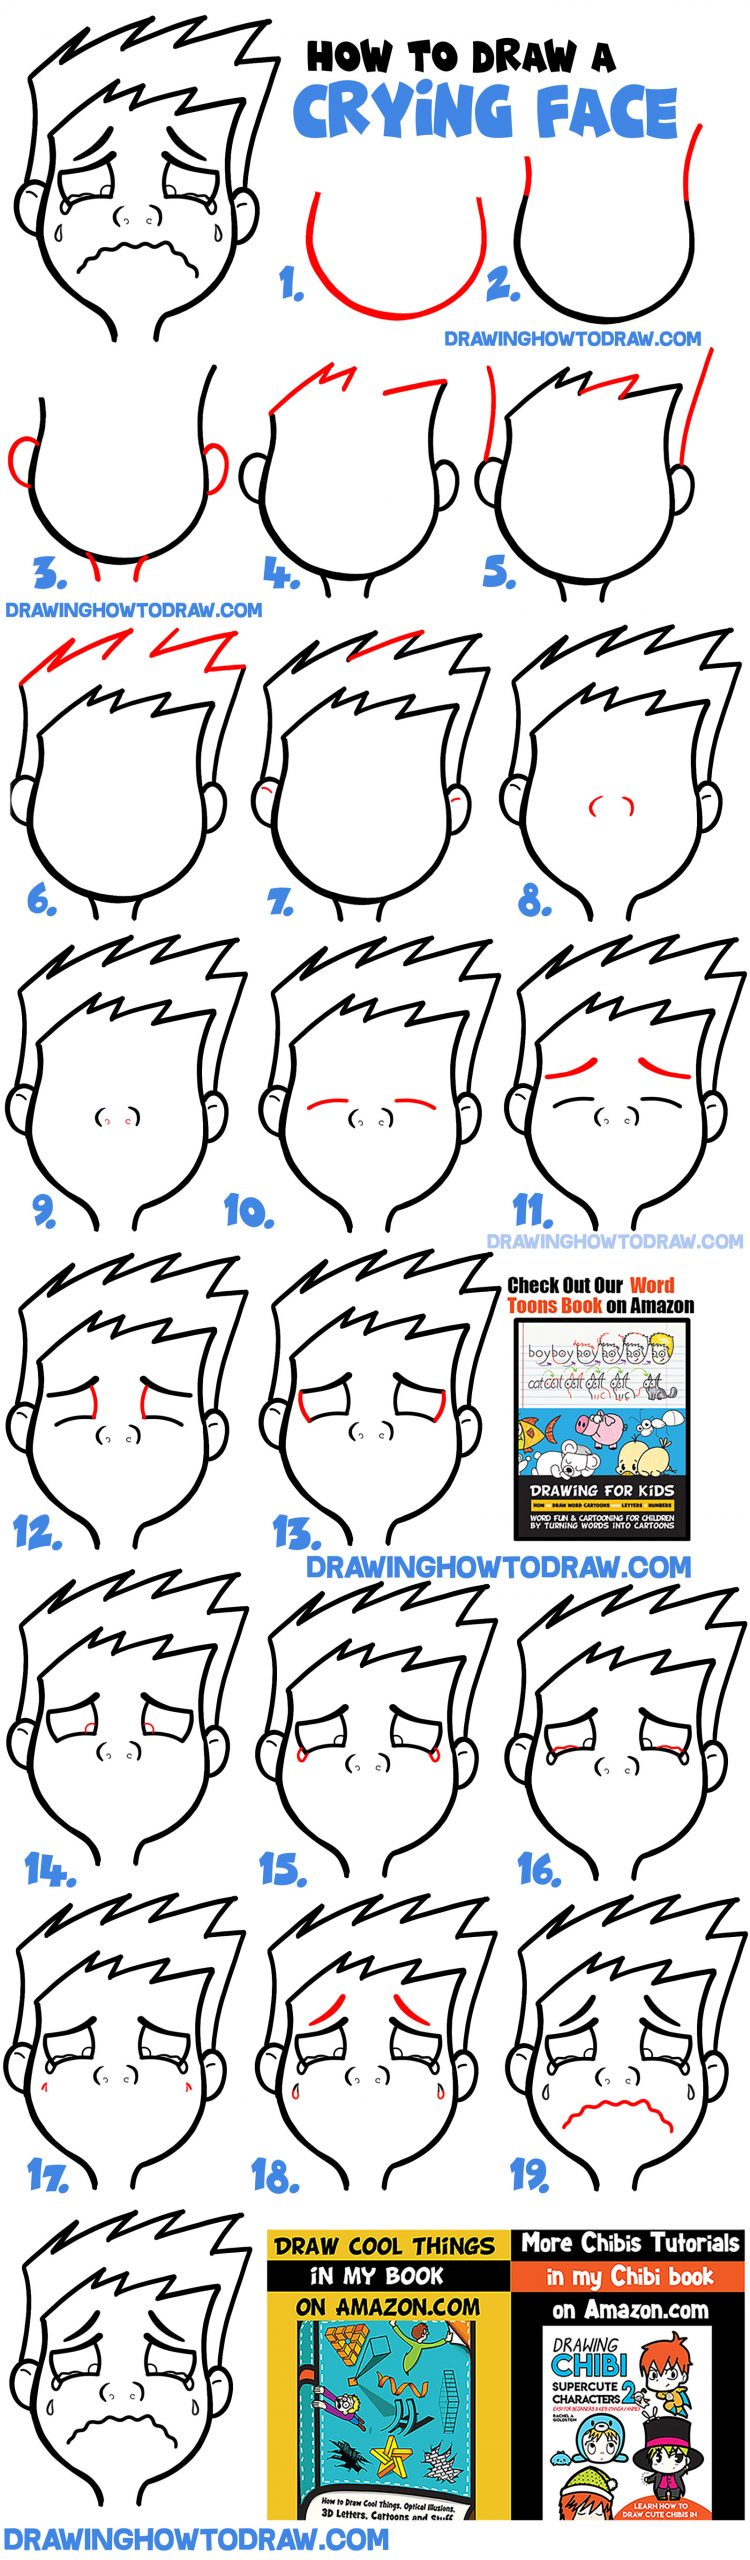 drawing cartoon facial expressions crying sobbing weeping easy step by step lesson